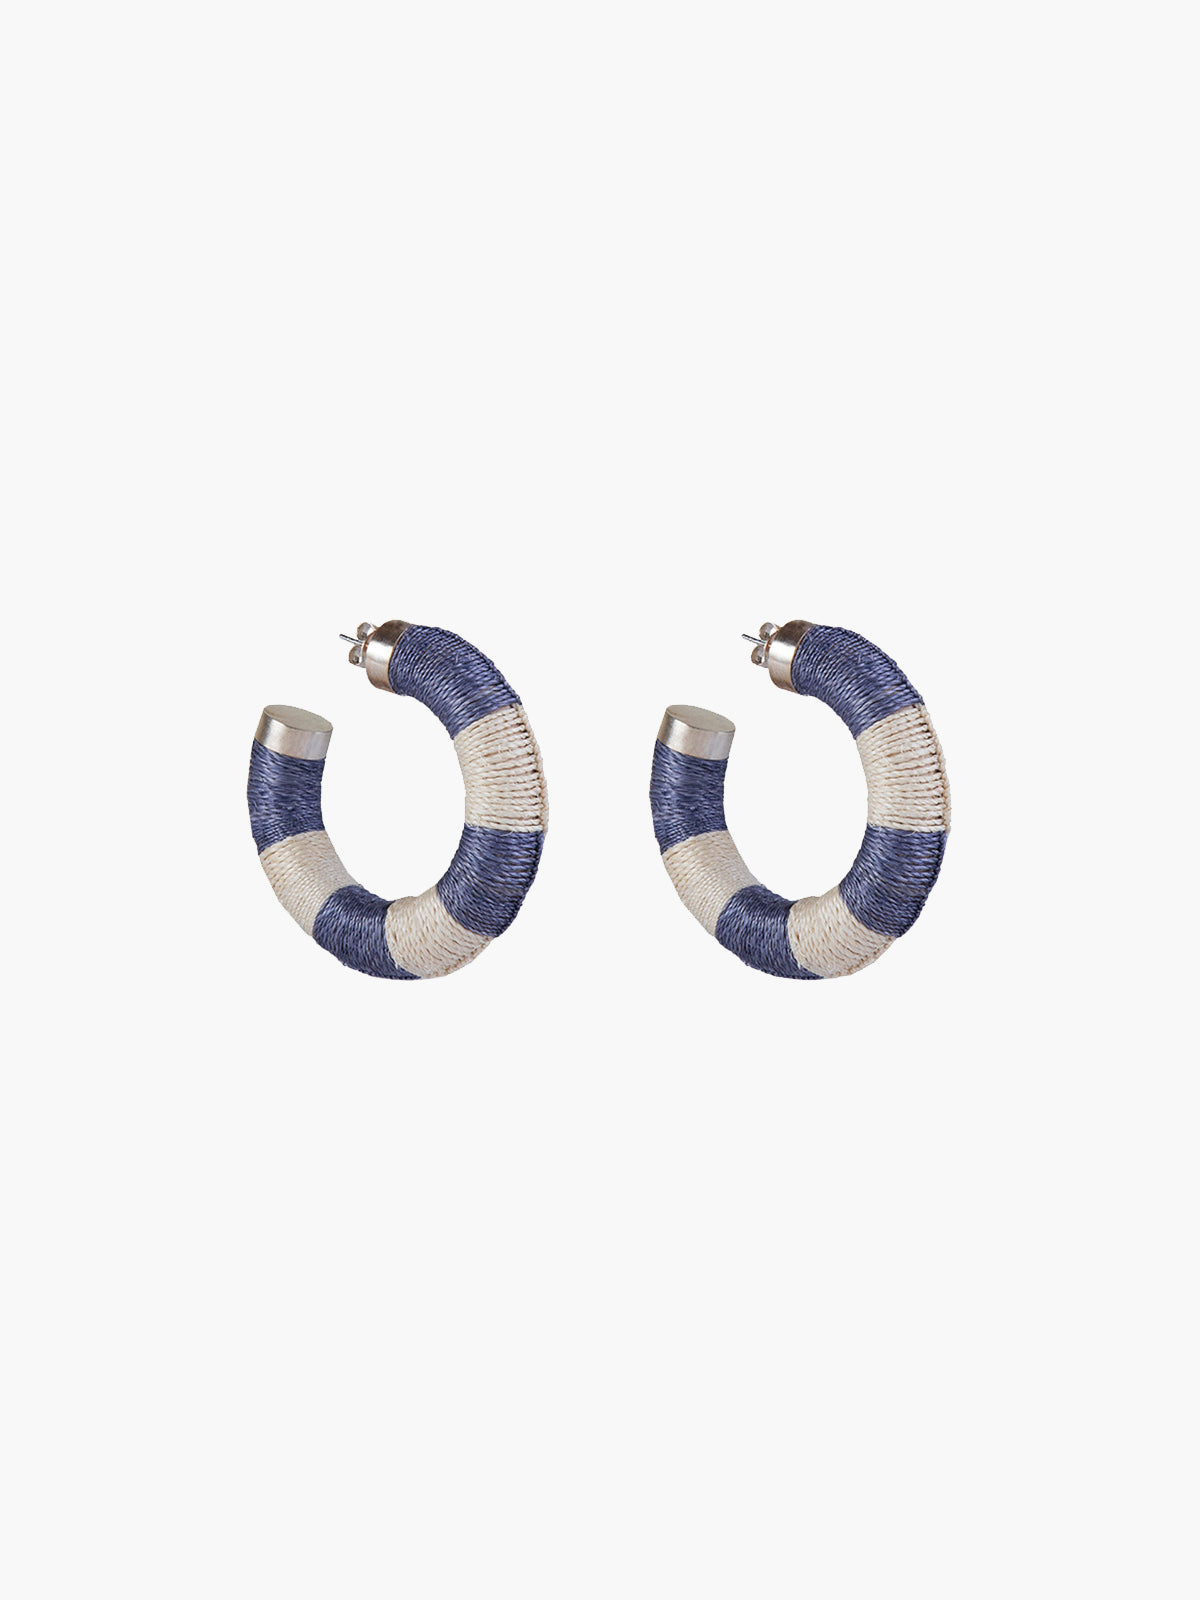 Maguey Hoops | Blue-Natural Maguey Hoops | Blue-Natural